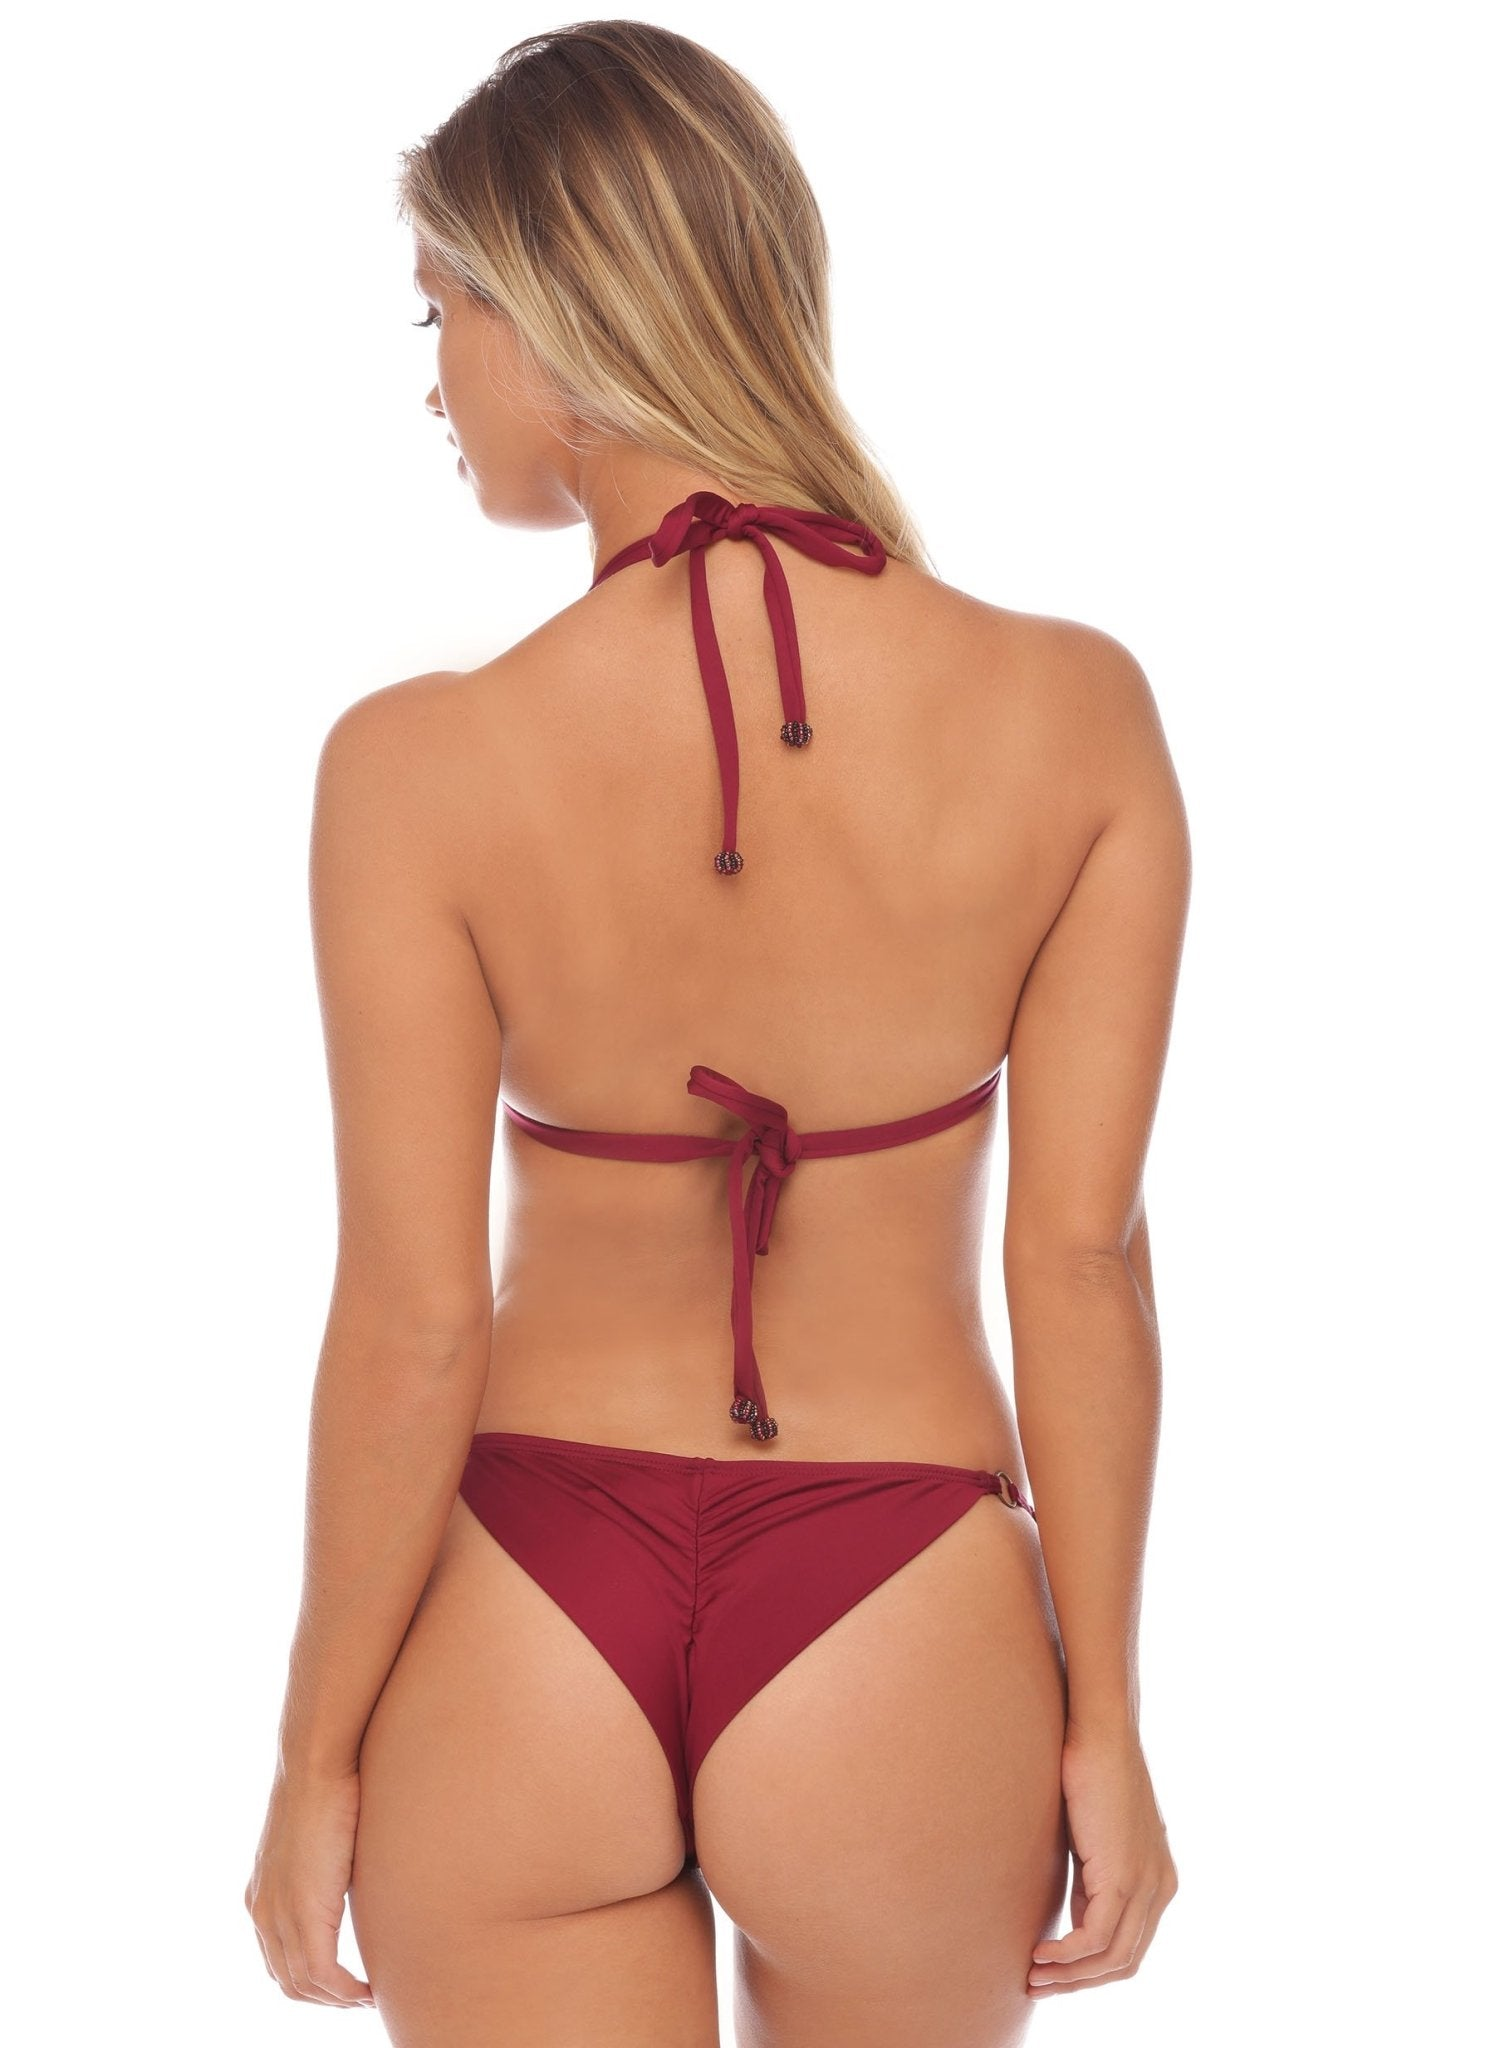 Jenna Lace Side Tie Bottom - Cheeky - Bordeaux - Salty Mermaid Swim